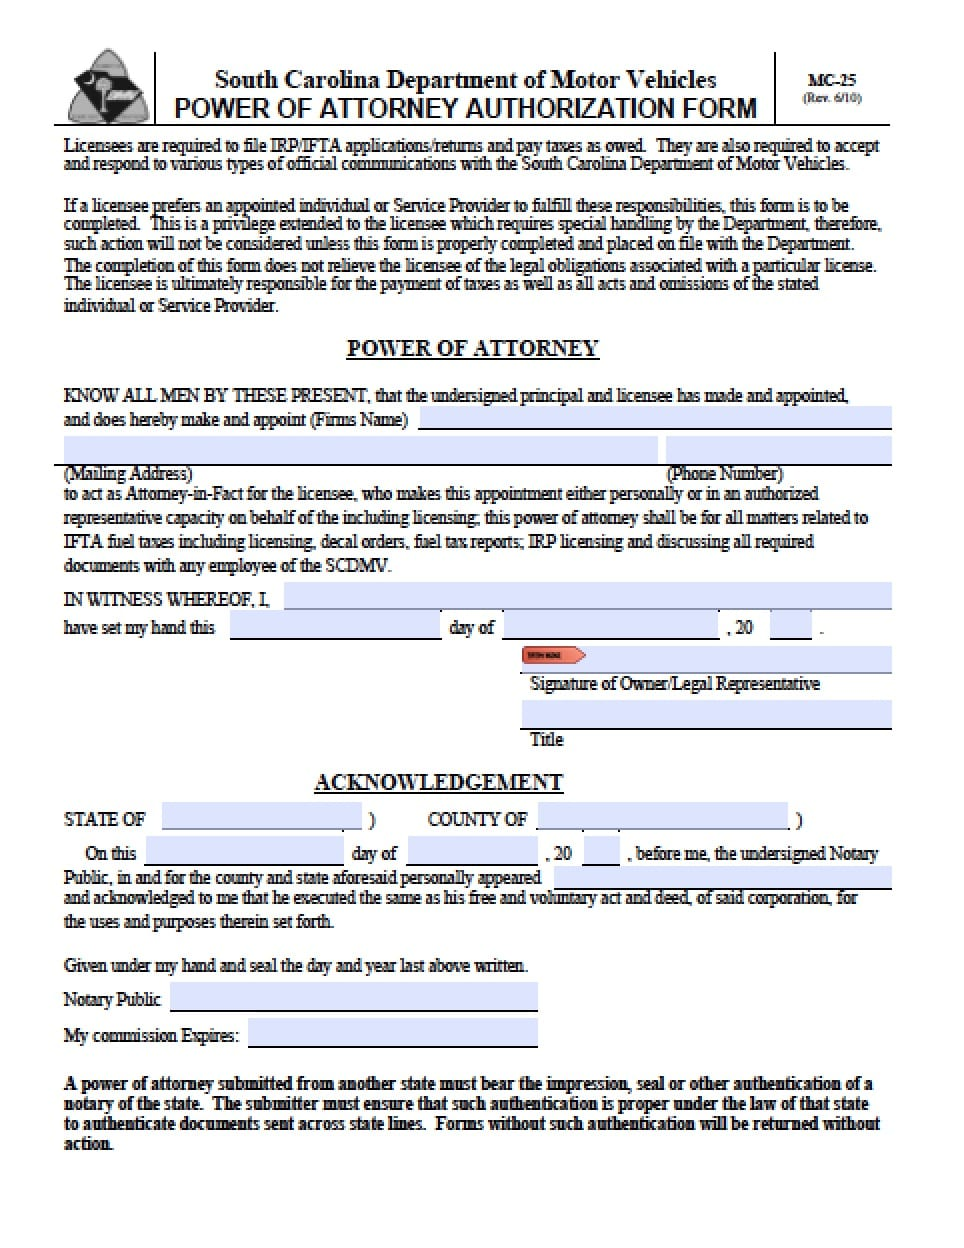 South carolina limited special power of attorney form for Power of attorney for motor vehicle only